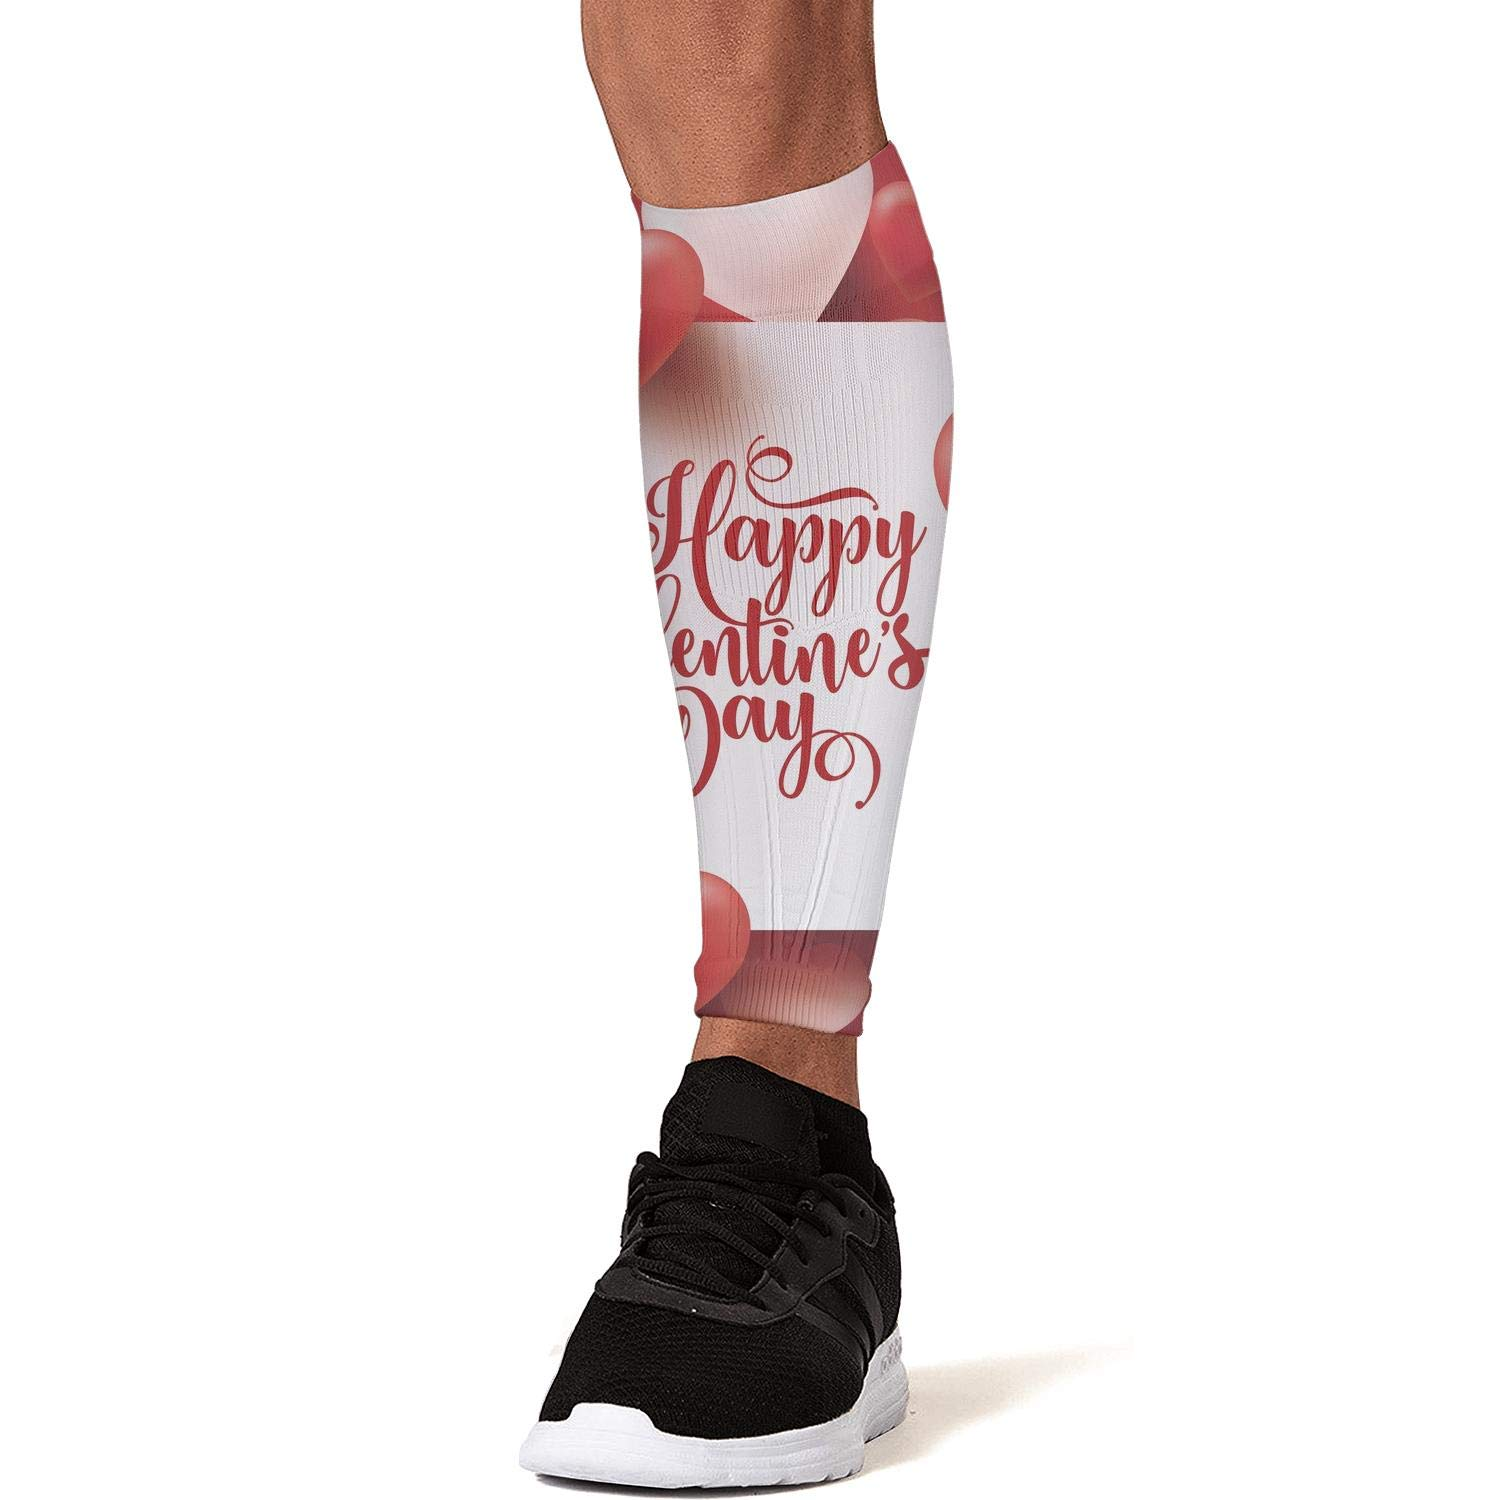 Smilelolly Valentines Day Red Heart Calf Compression Sleeves Helps Faster Recovery Leg Sleeves for Men Women